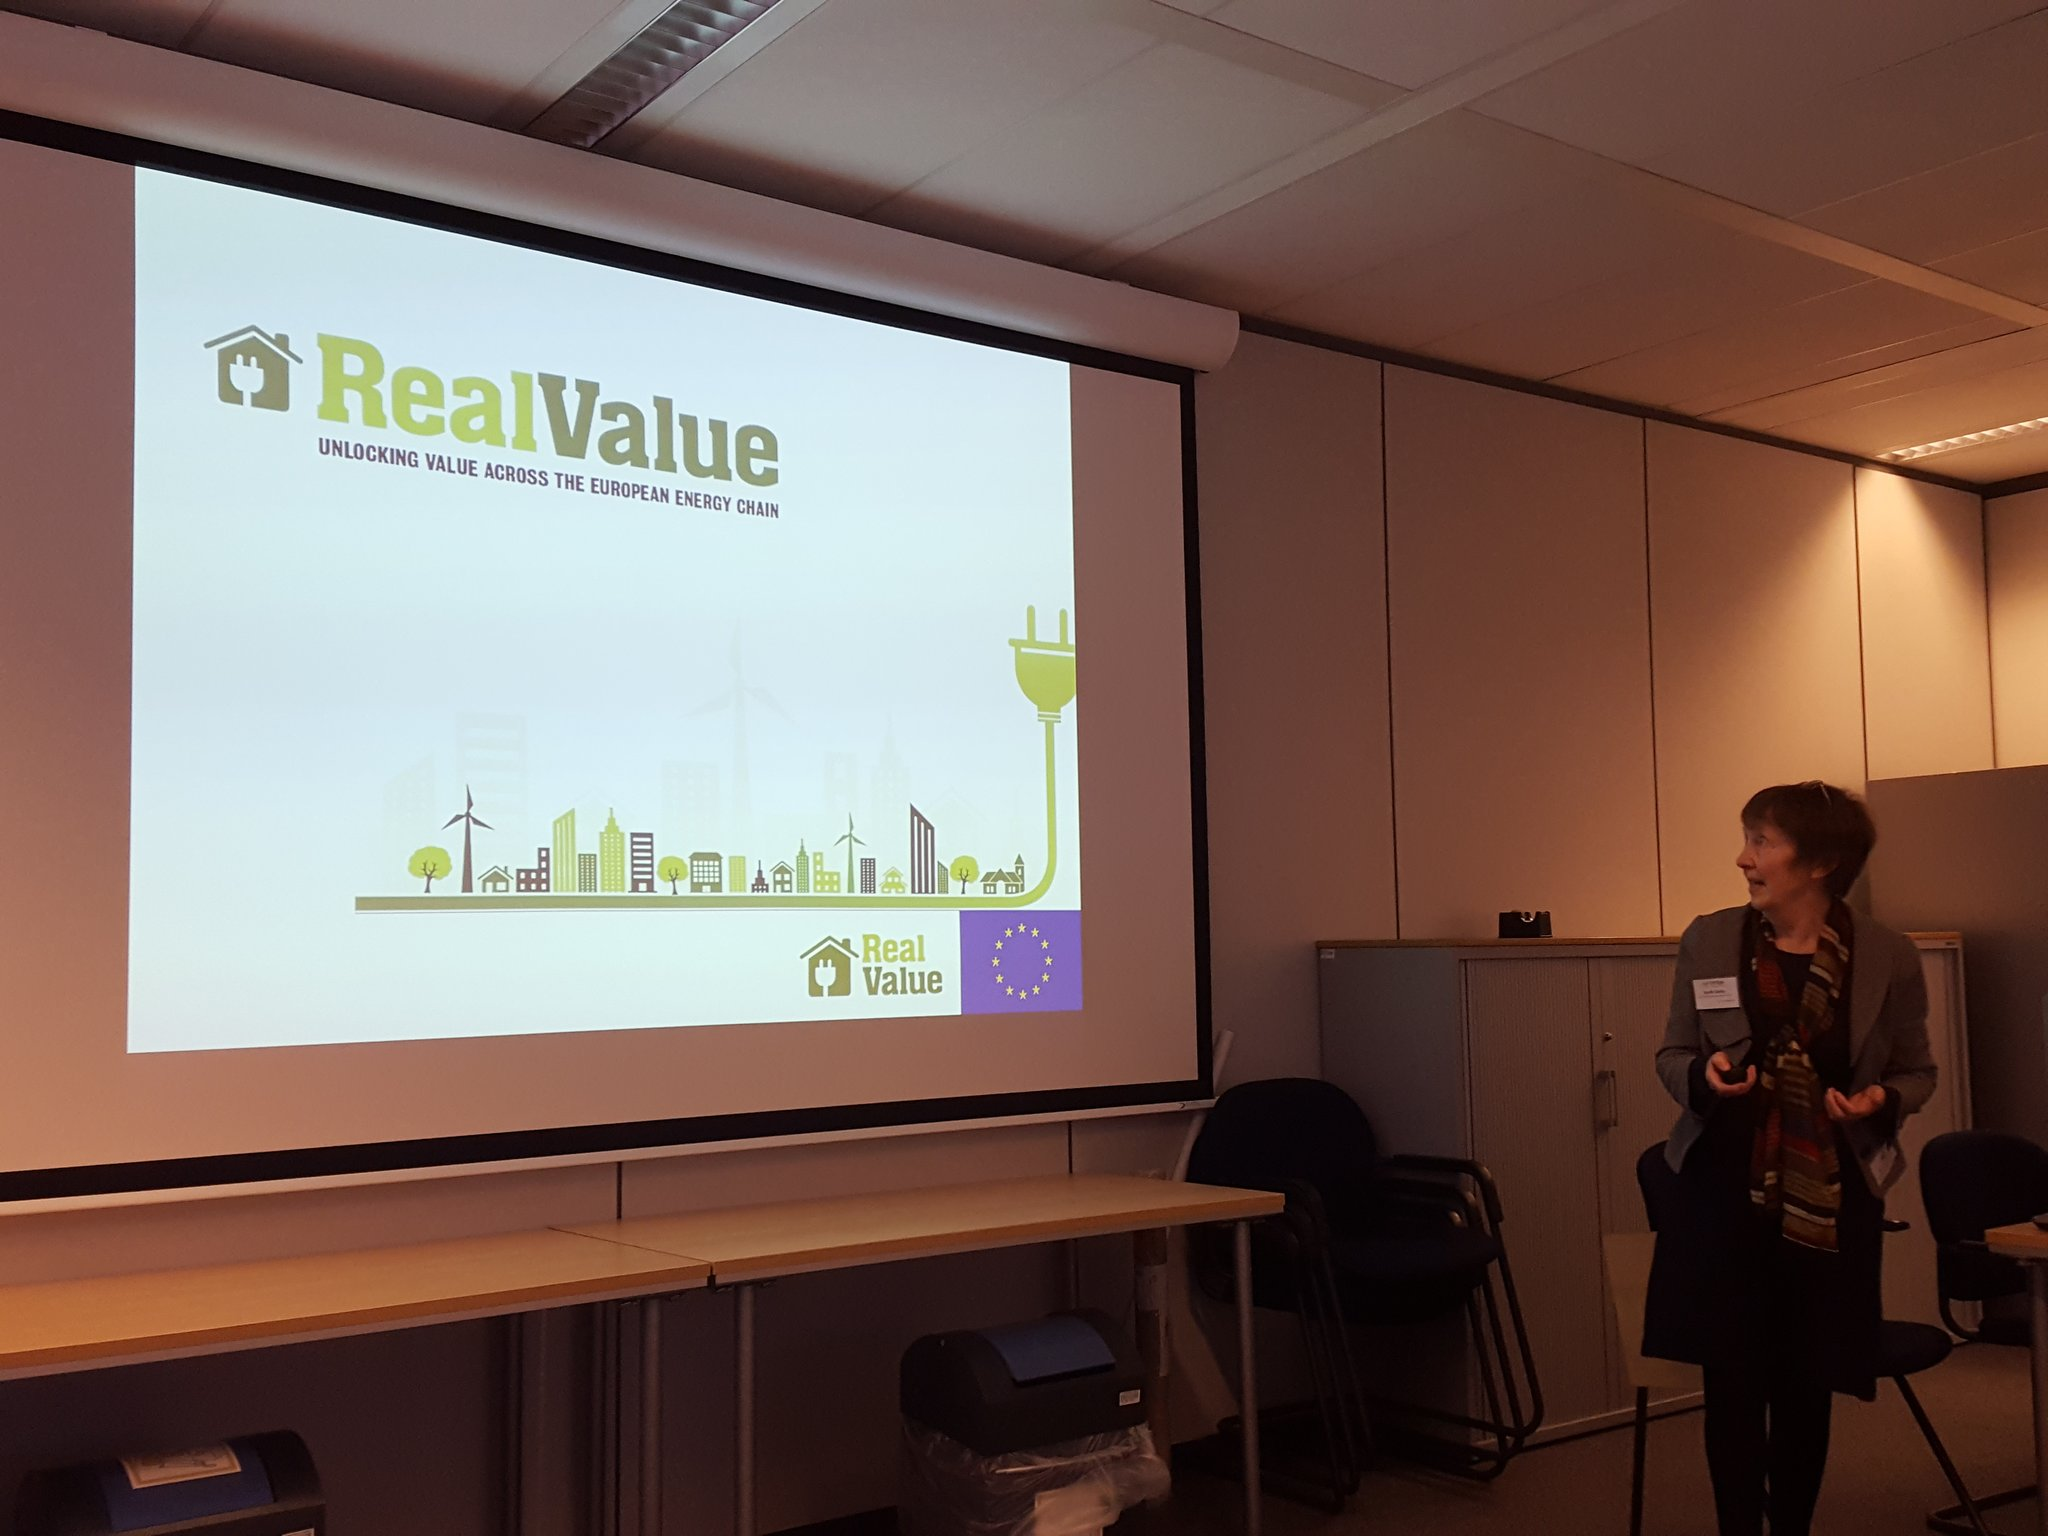 Sarah Darby with excellent Customer Engagement insights from the @RealValue2020 #H2020 project #EnergyStorage https://t.co/1BXkoLz9hf